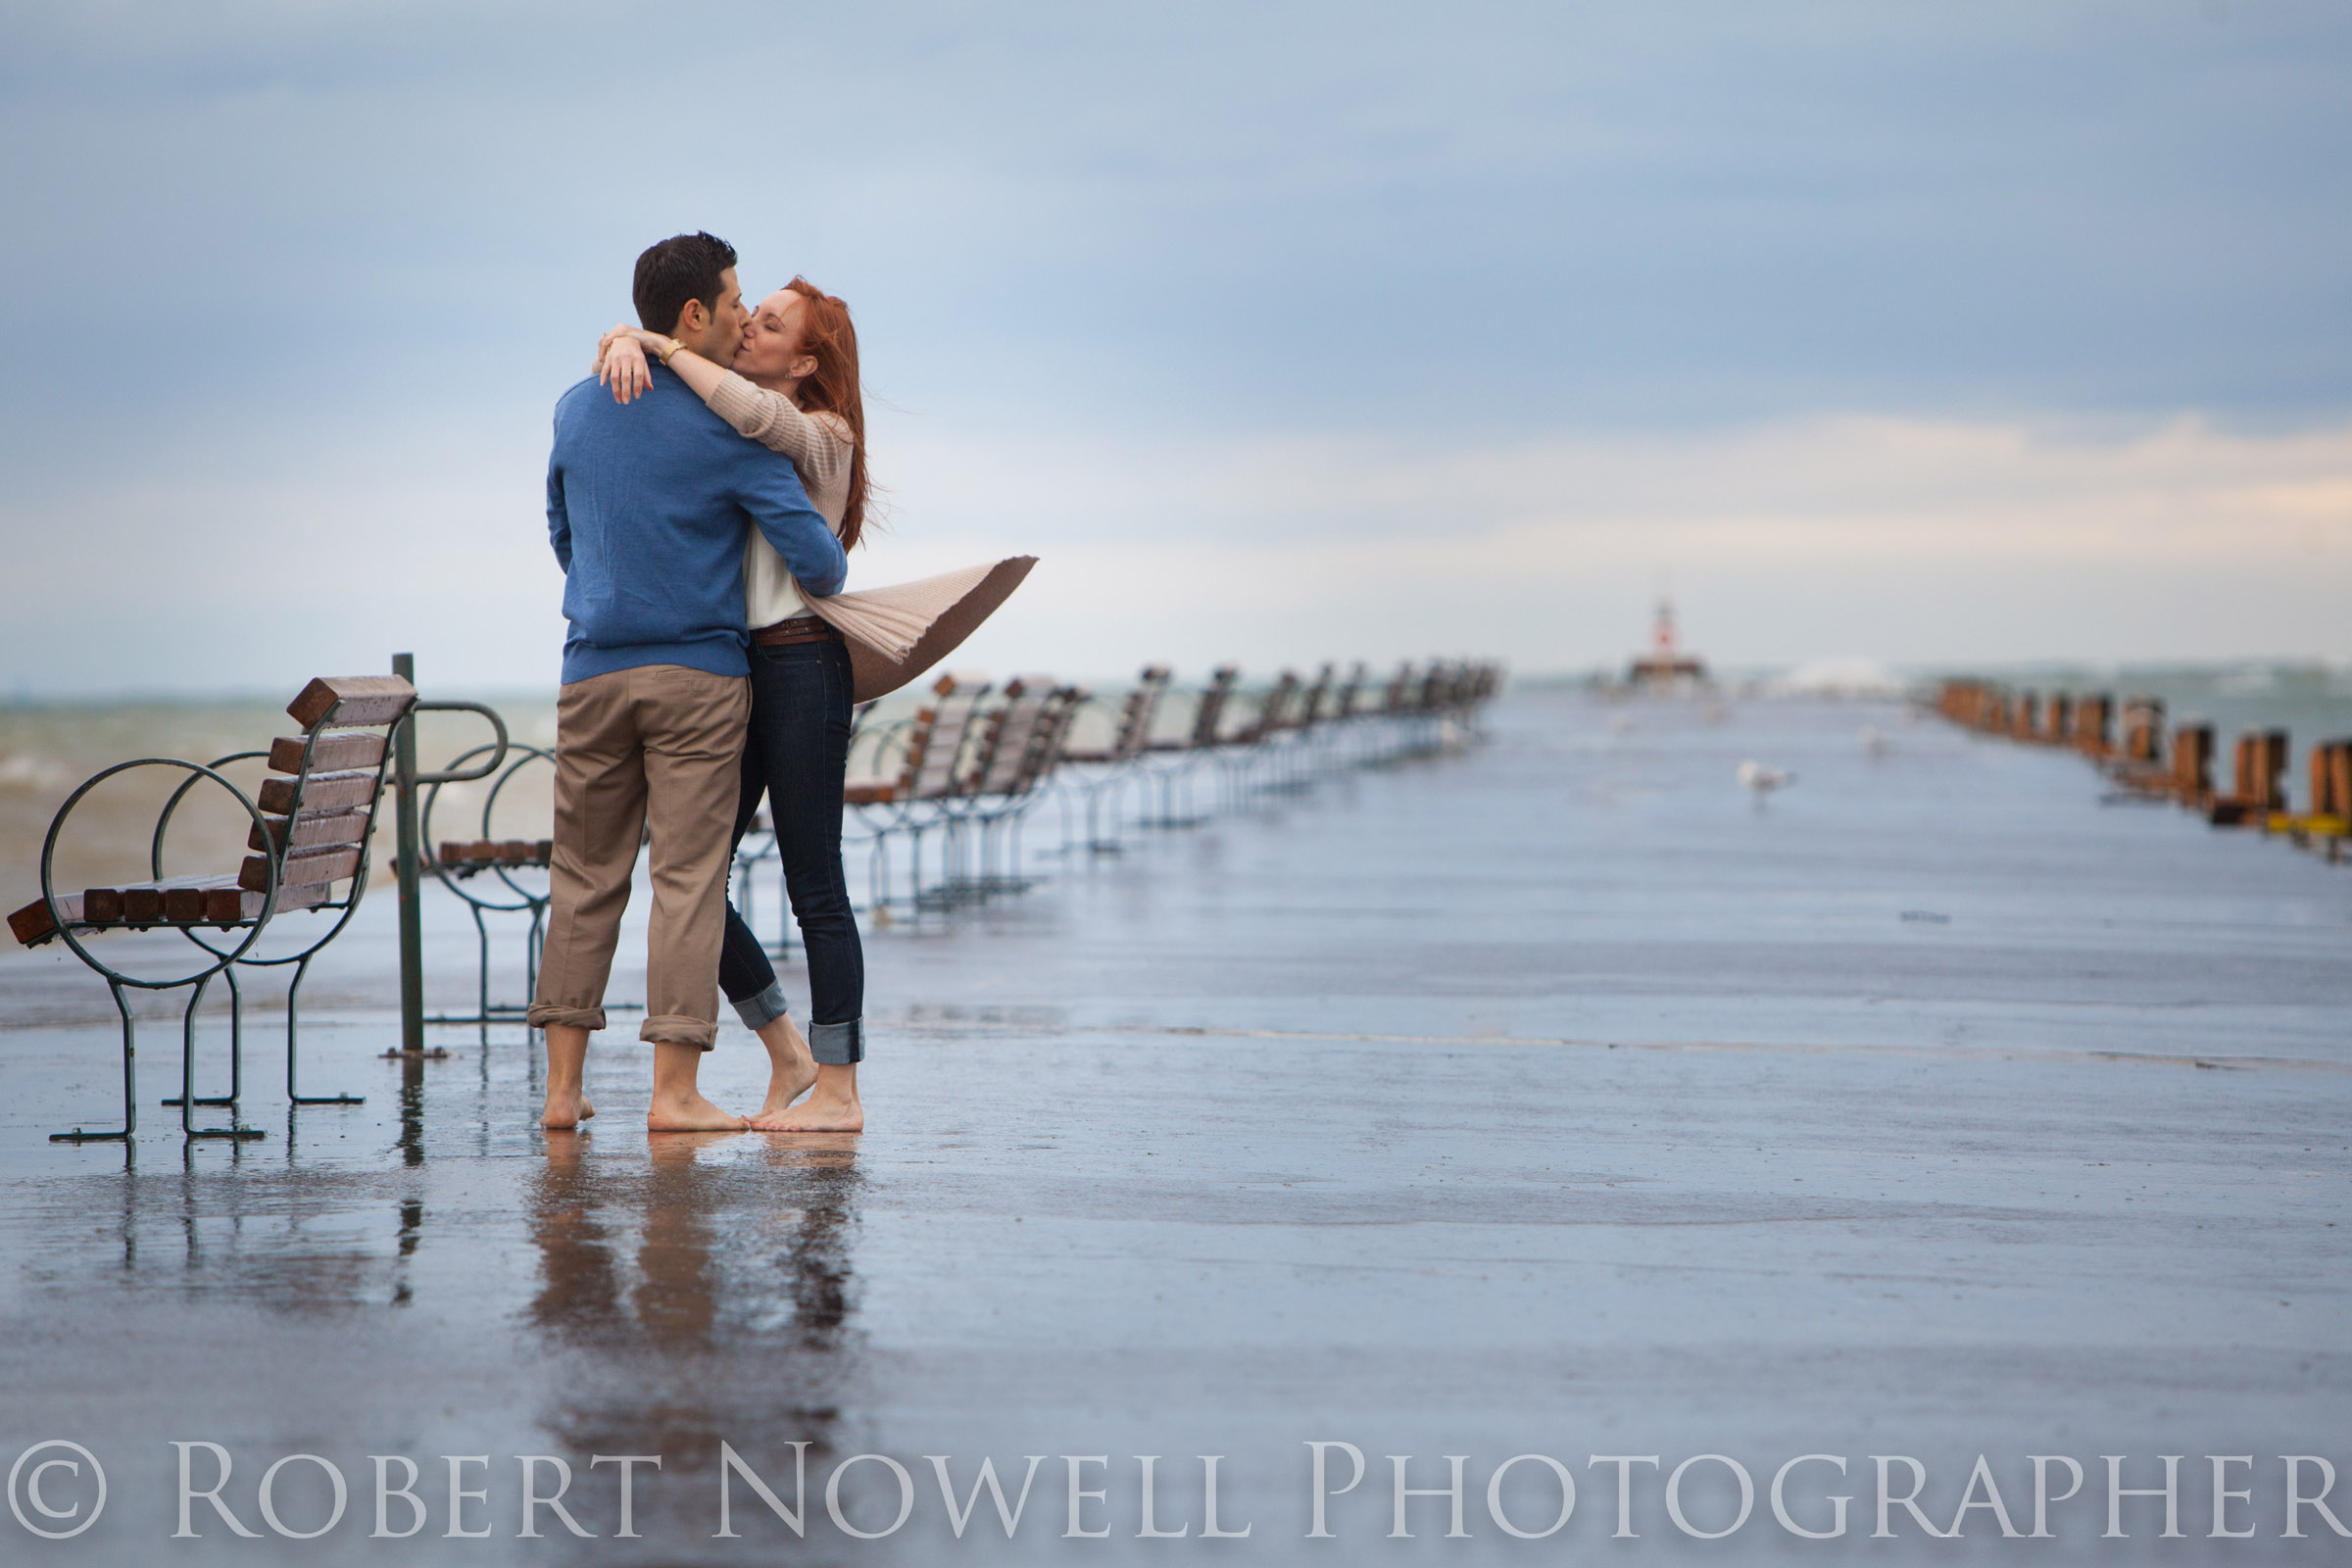 Lake Ontario, crashing waves and romance